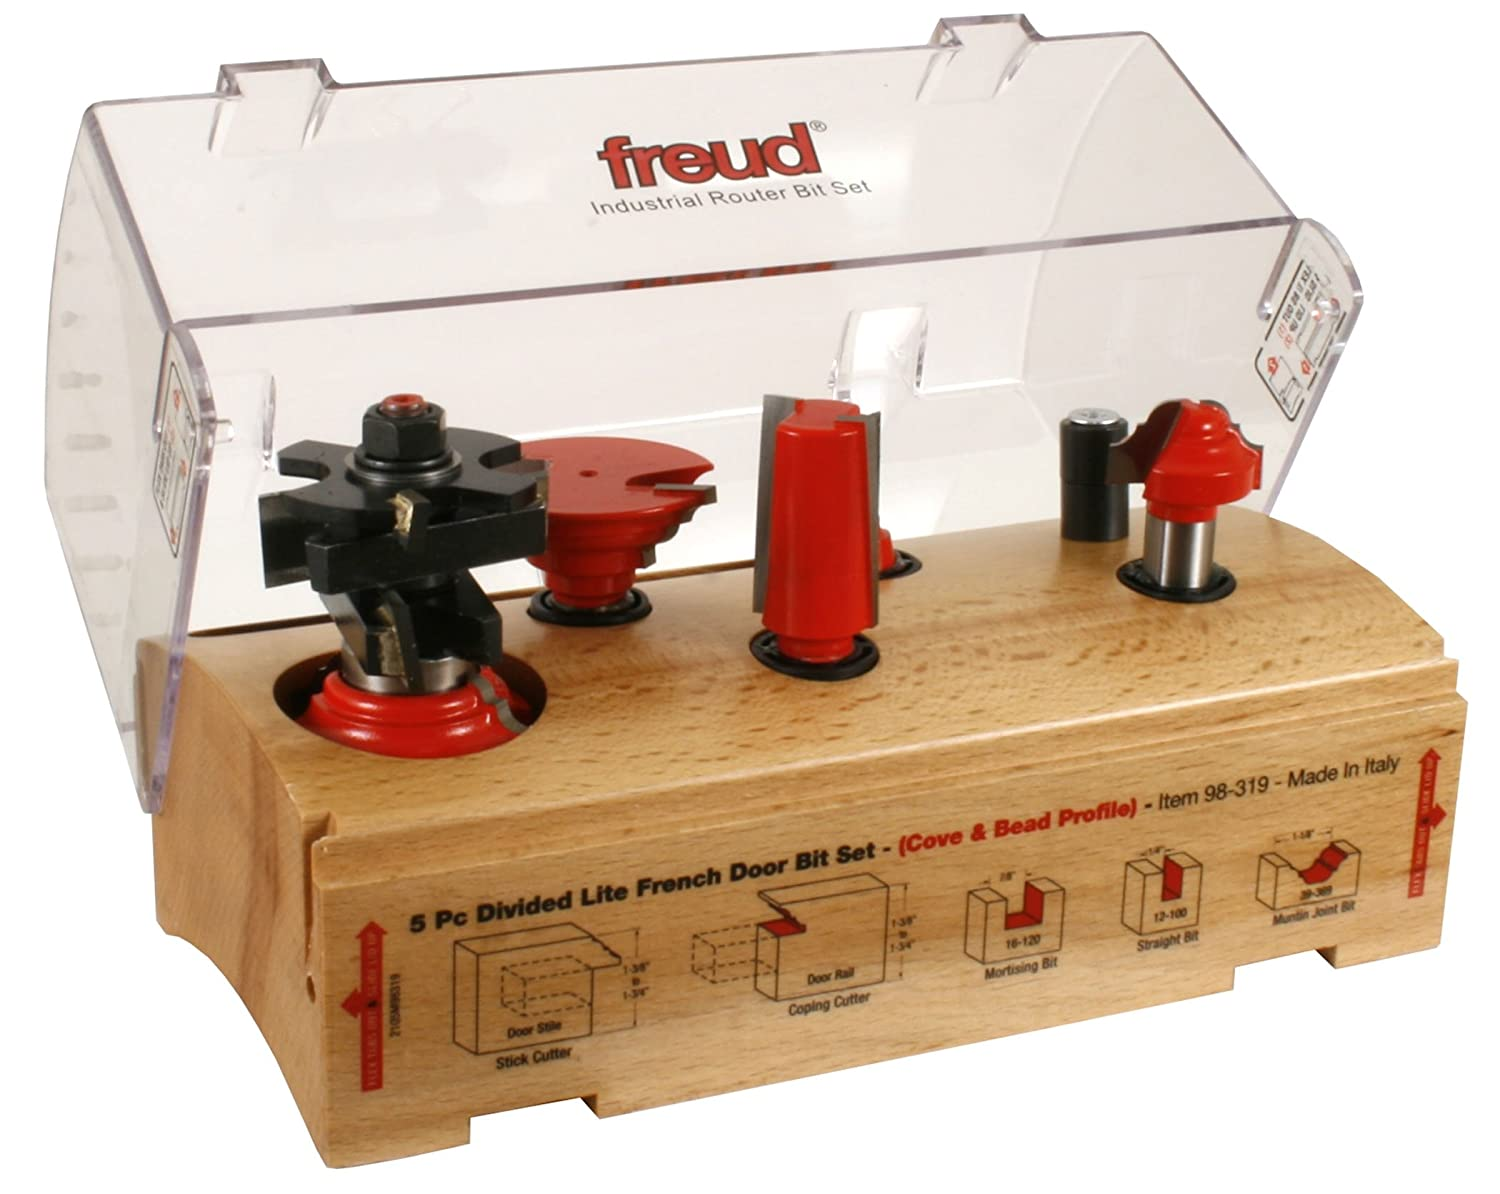 Freud 98-318 5 Piece French Door Router Bit Set - Divided Lite - Ogee Profile 98-308 + 98-328 - 1/2 inch Shank - Edge Treatment And Grooving Router Bits ...